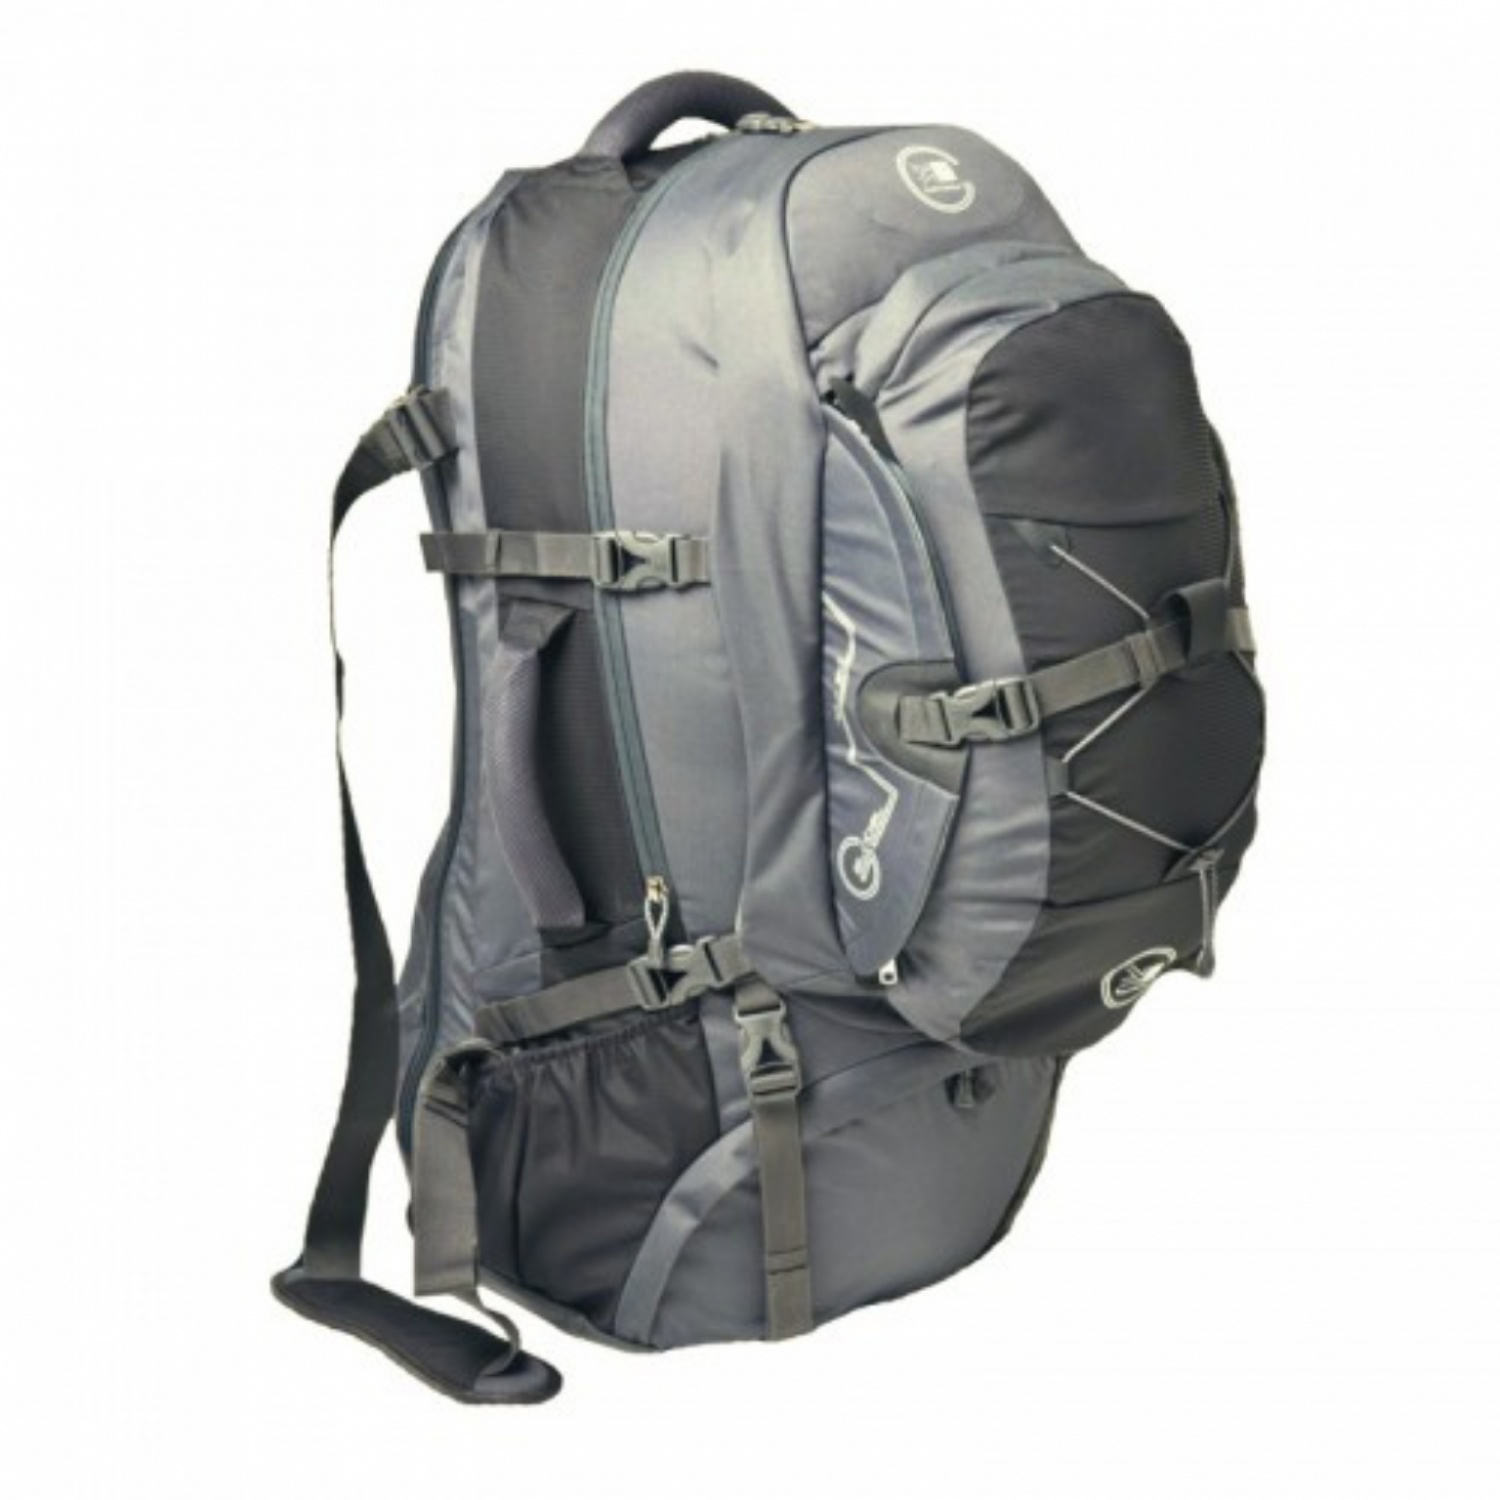 415020d926e1 GLOBAL 50-70 WOMENS SPECIFIC TRAVEL PACK